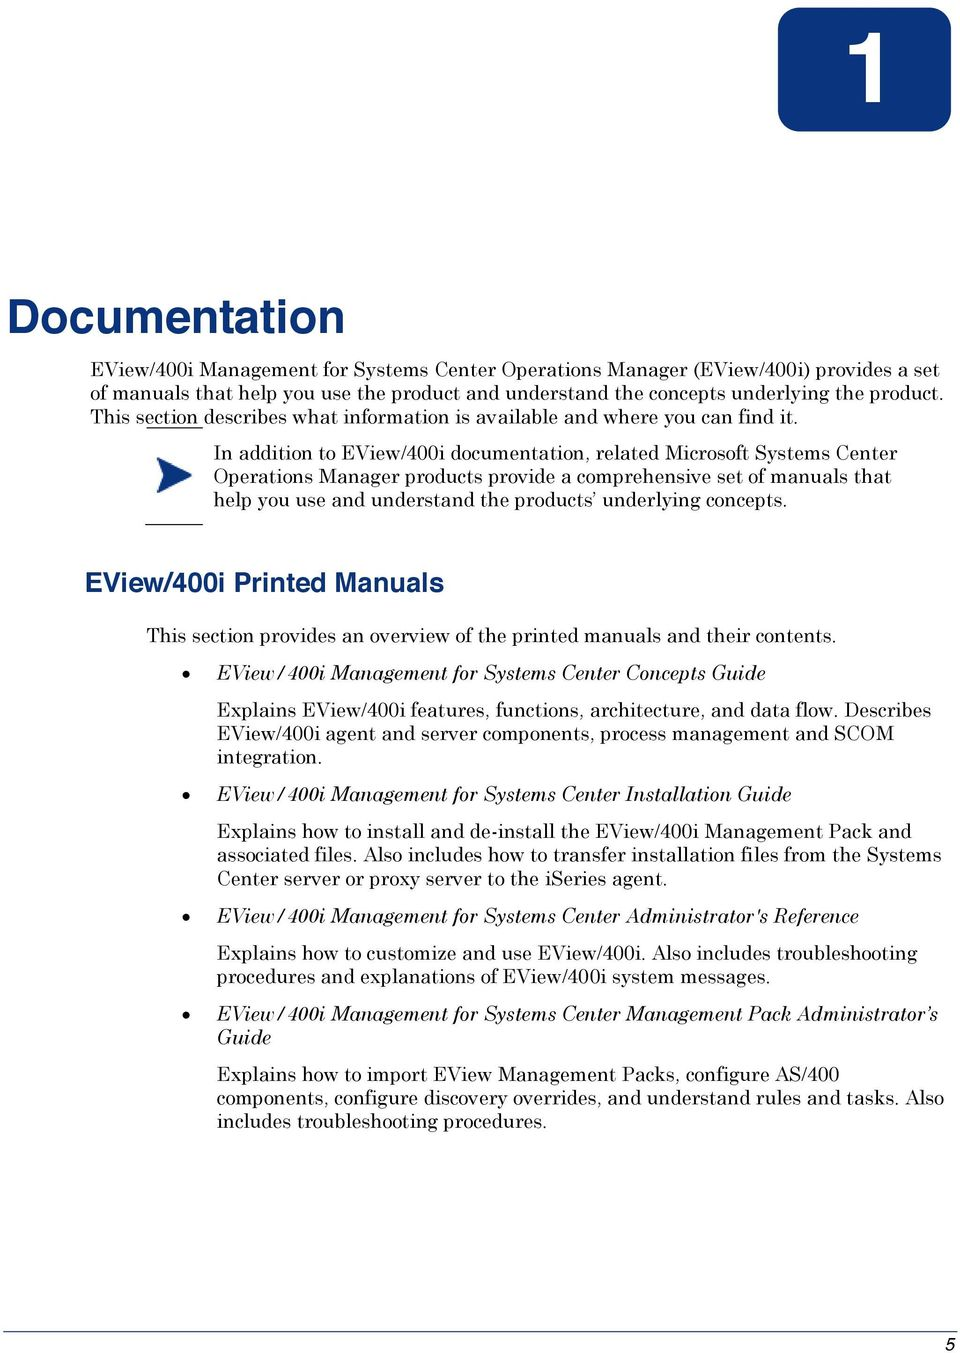 EView/400i Management Pack for Systems Center Operations